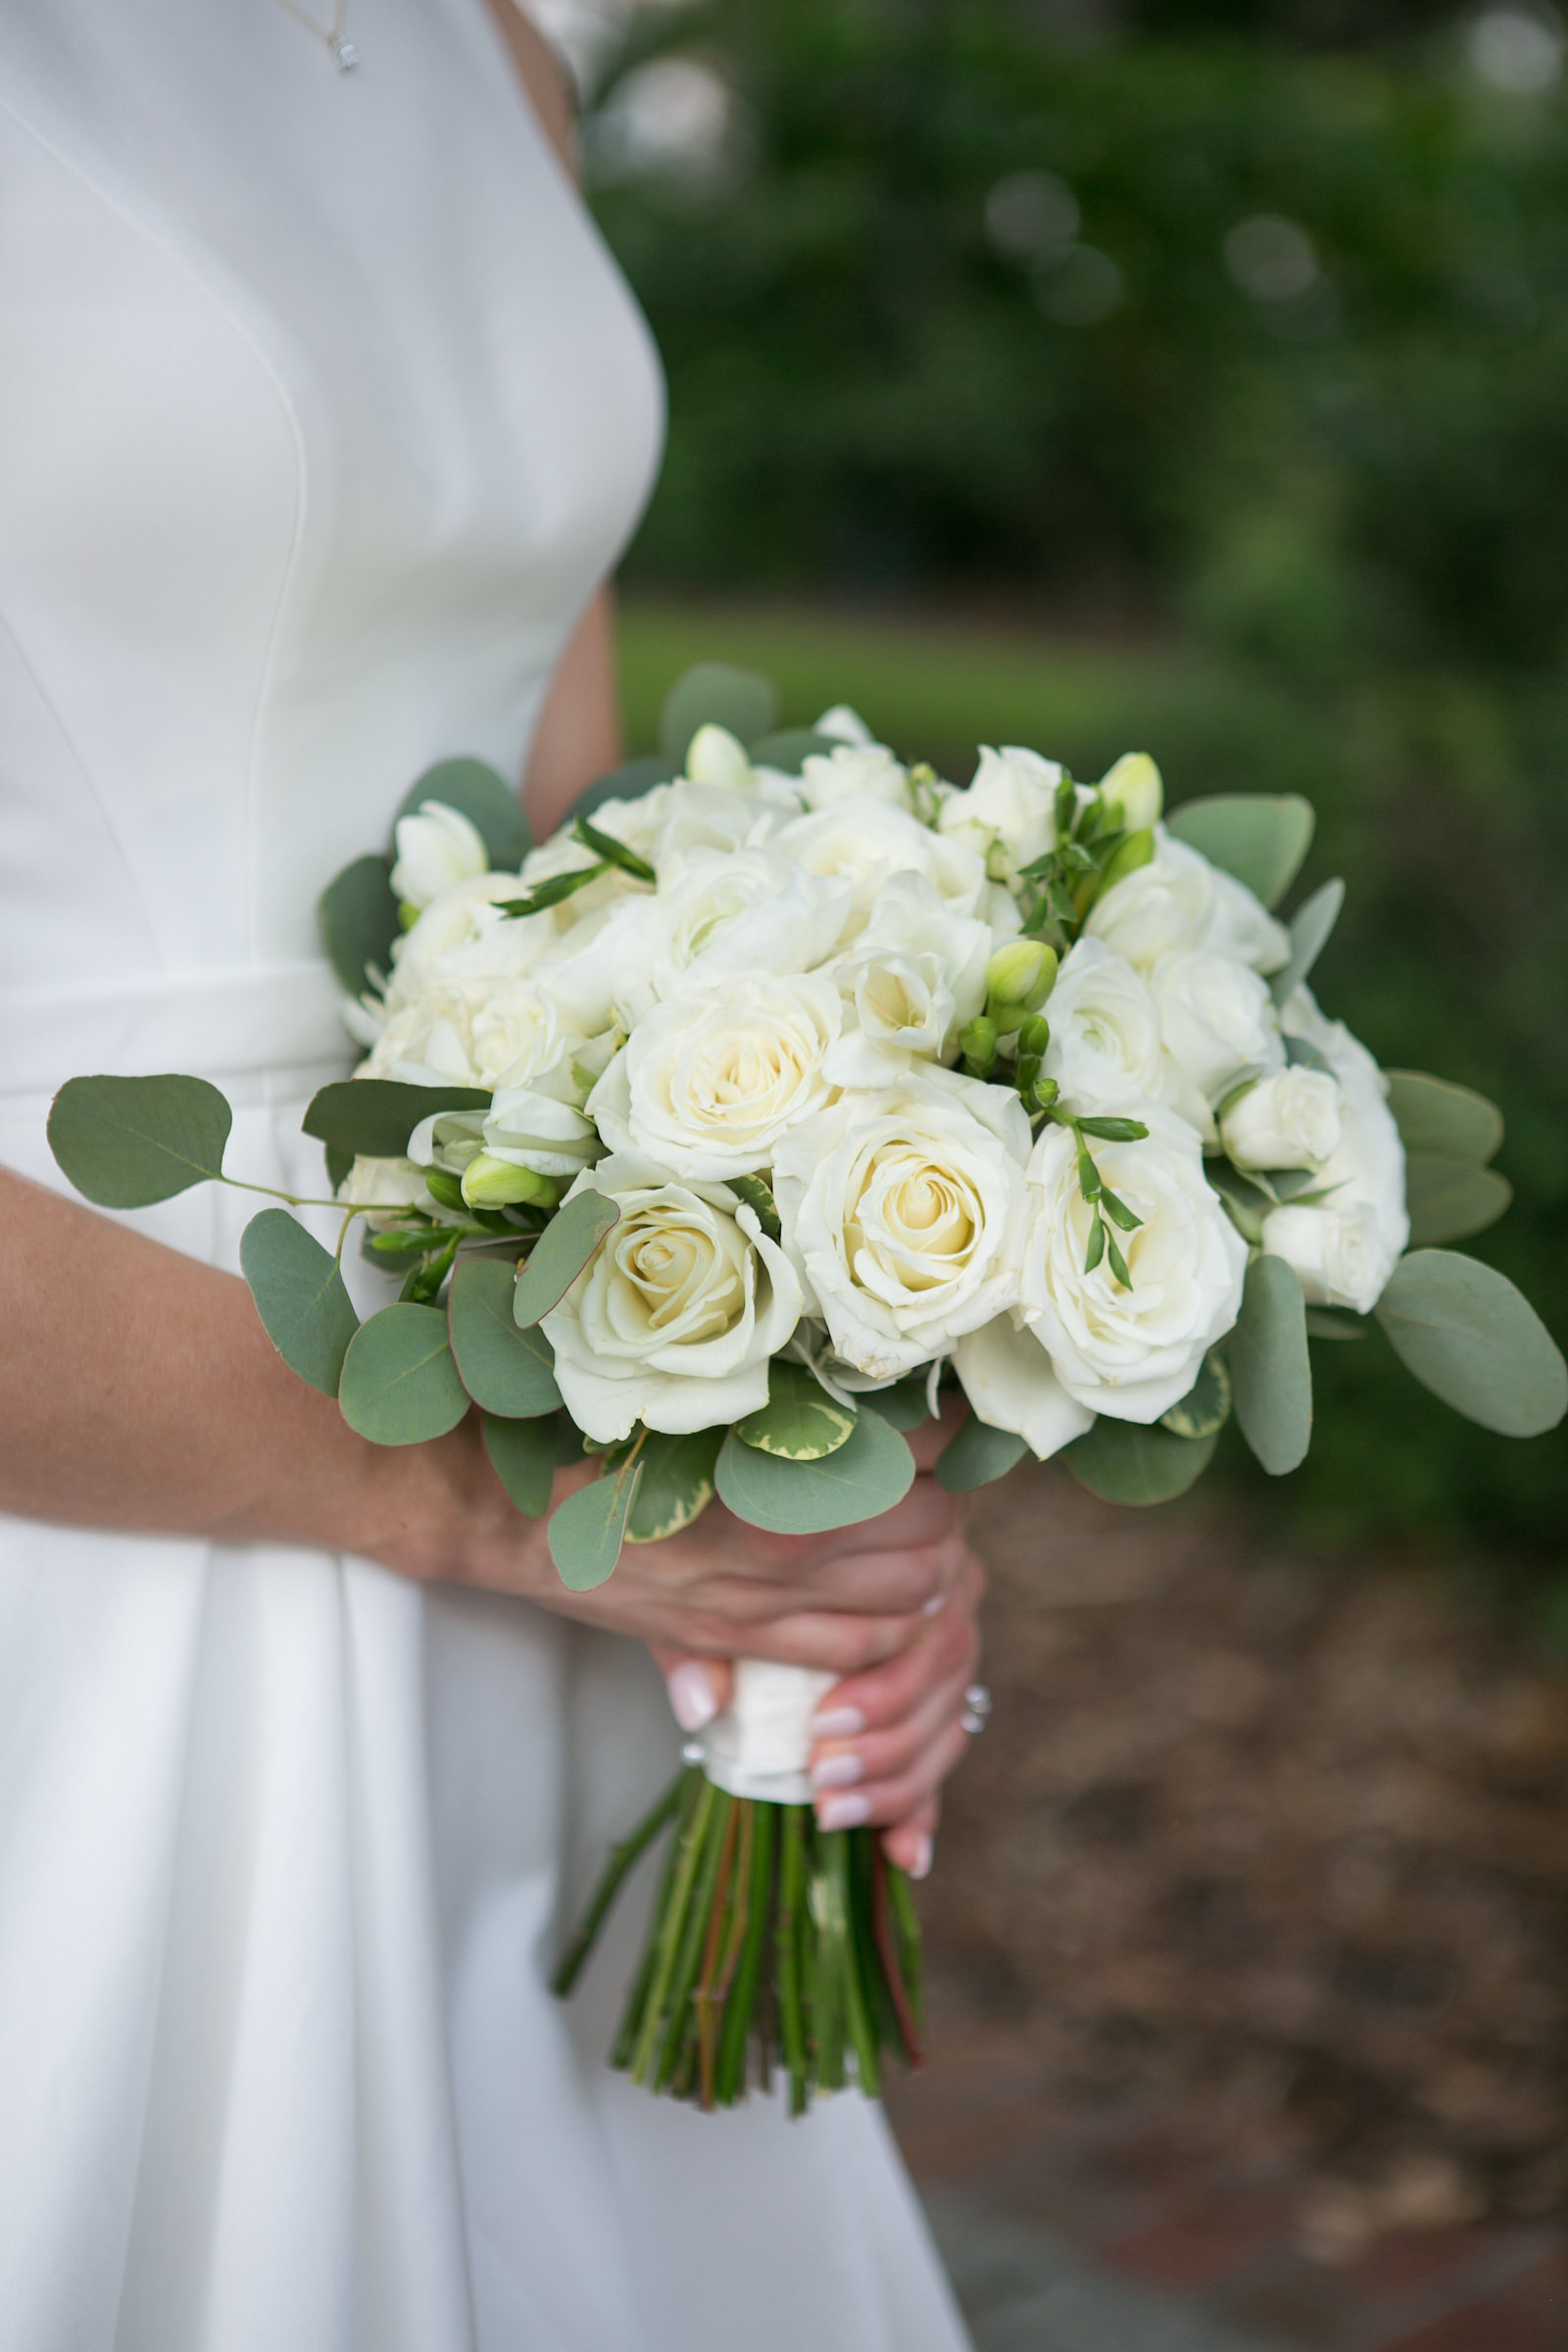 Neutral Bridal Wedding Bouquet White White Roses and Freesia and Eucalyptus Greenery | Carrie Wildes Photography